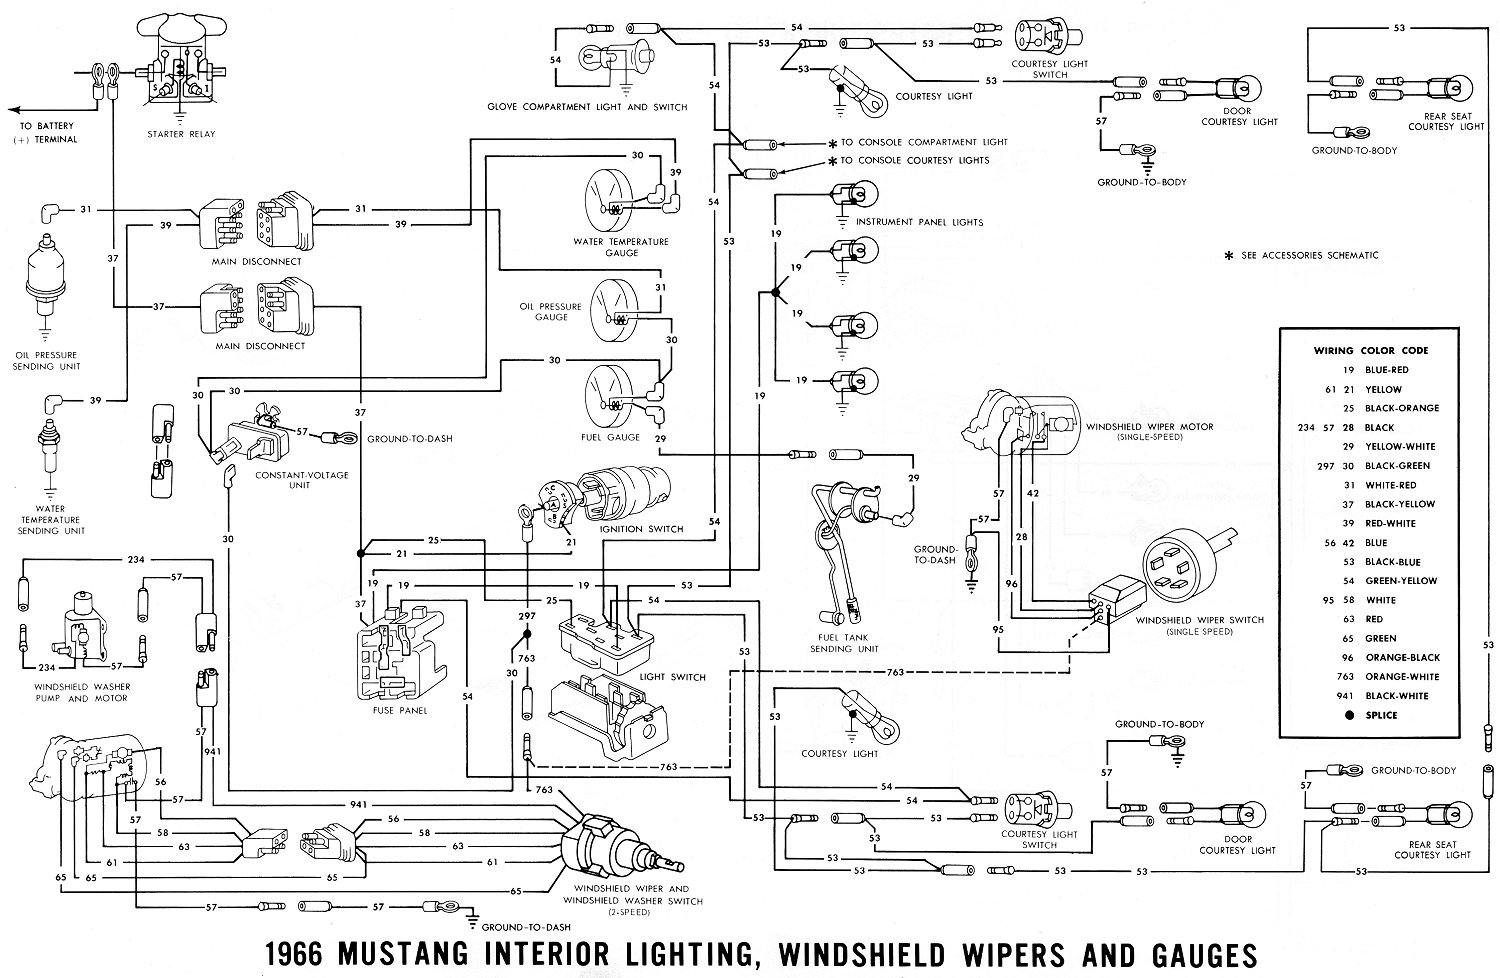 66inter1 1966 mustang wiring diagrams average joe restoration 1966 mustang wiring diagrams at nearapp.co